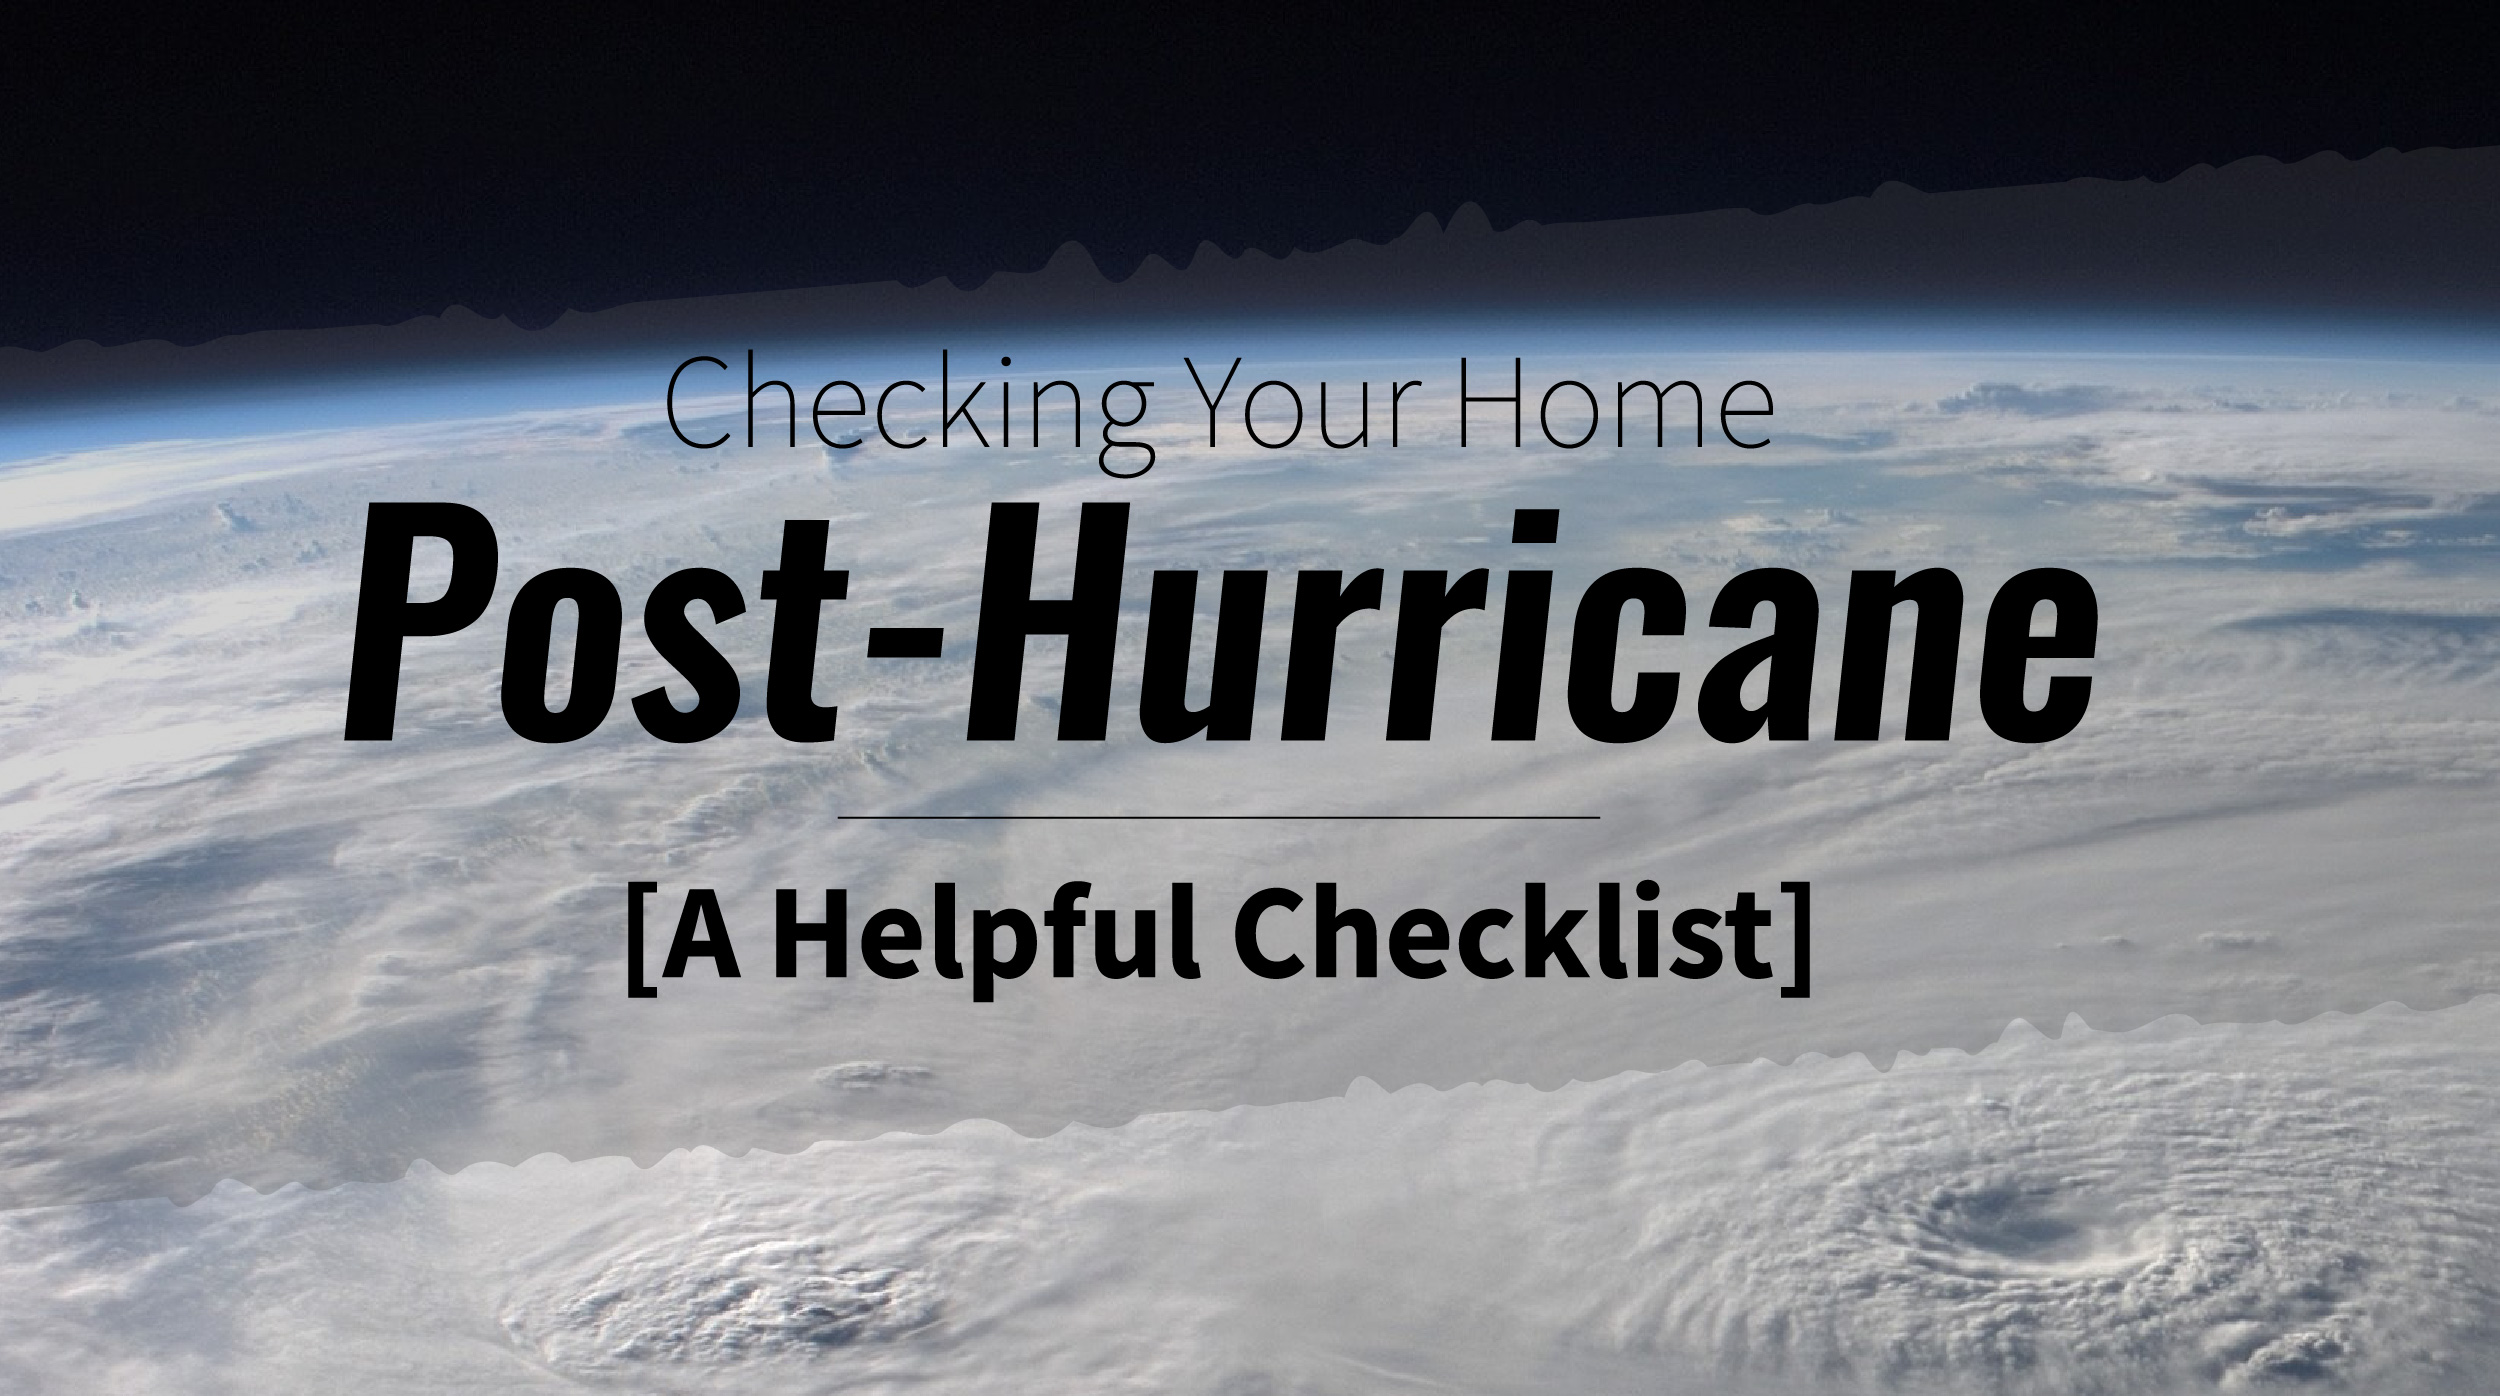 Checking Your Home Post-Hurricane [A Helpful Checklist]